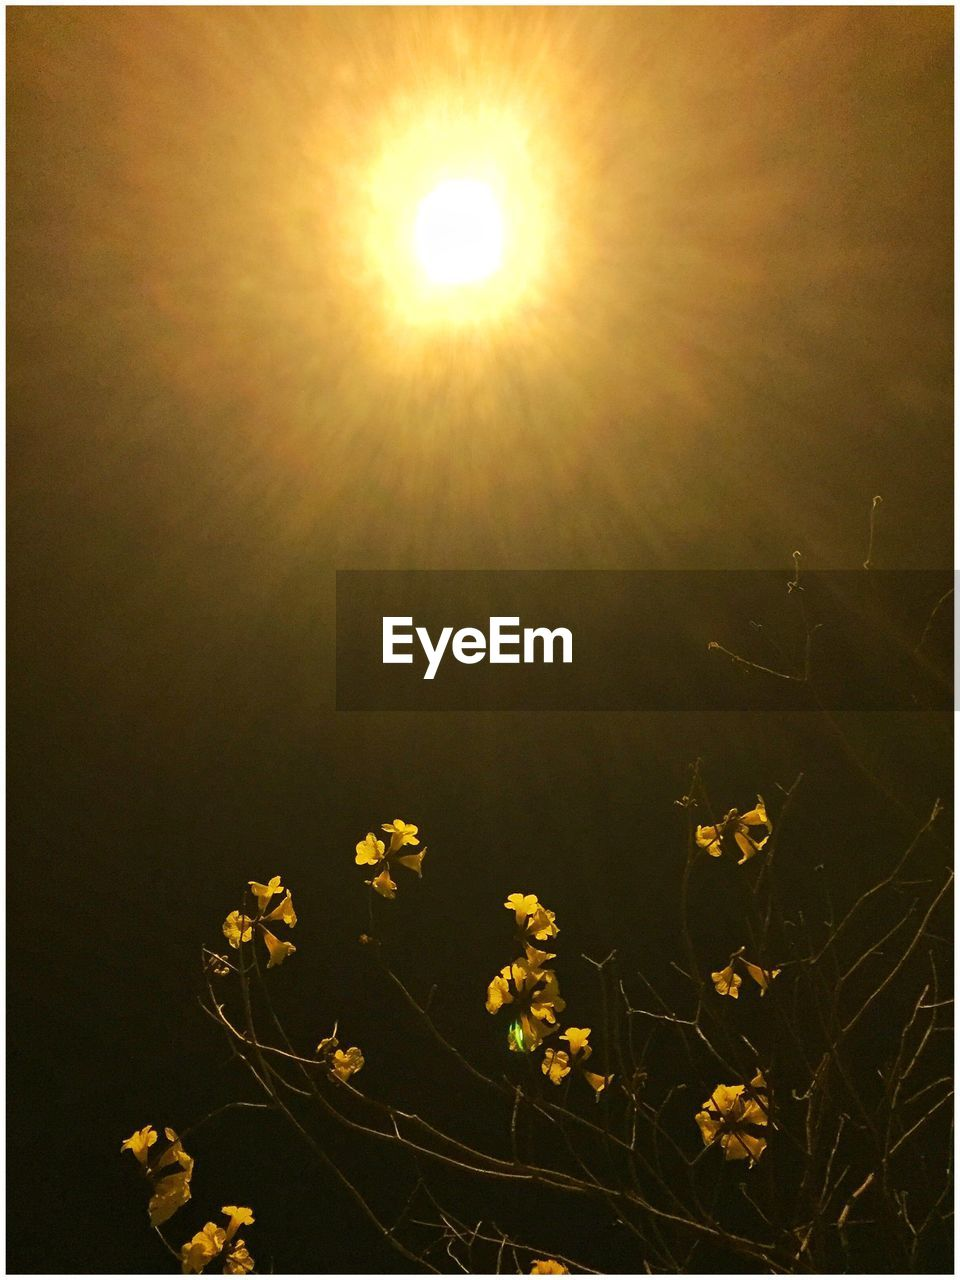 sun, flower, nature, beauty in nature, no people, yellow, outdoors, plant, growth, moon, scenics, fragility, freshness, close-up, day, sky